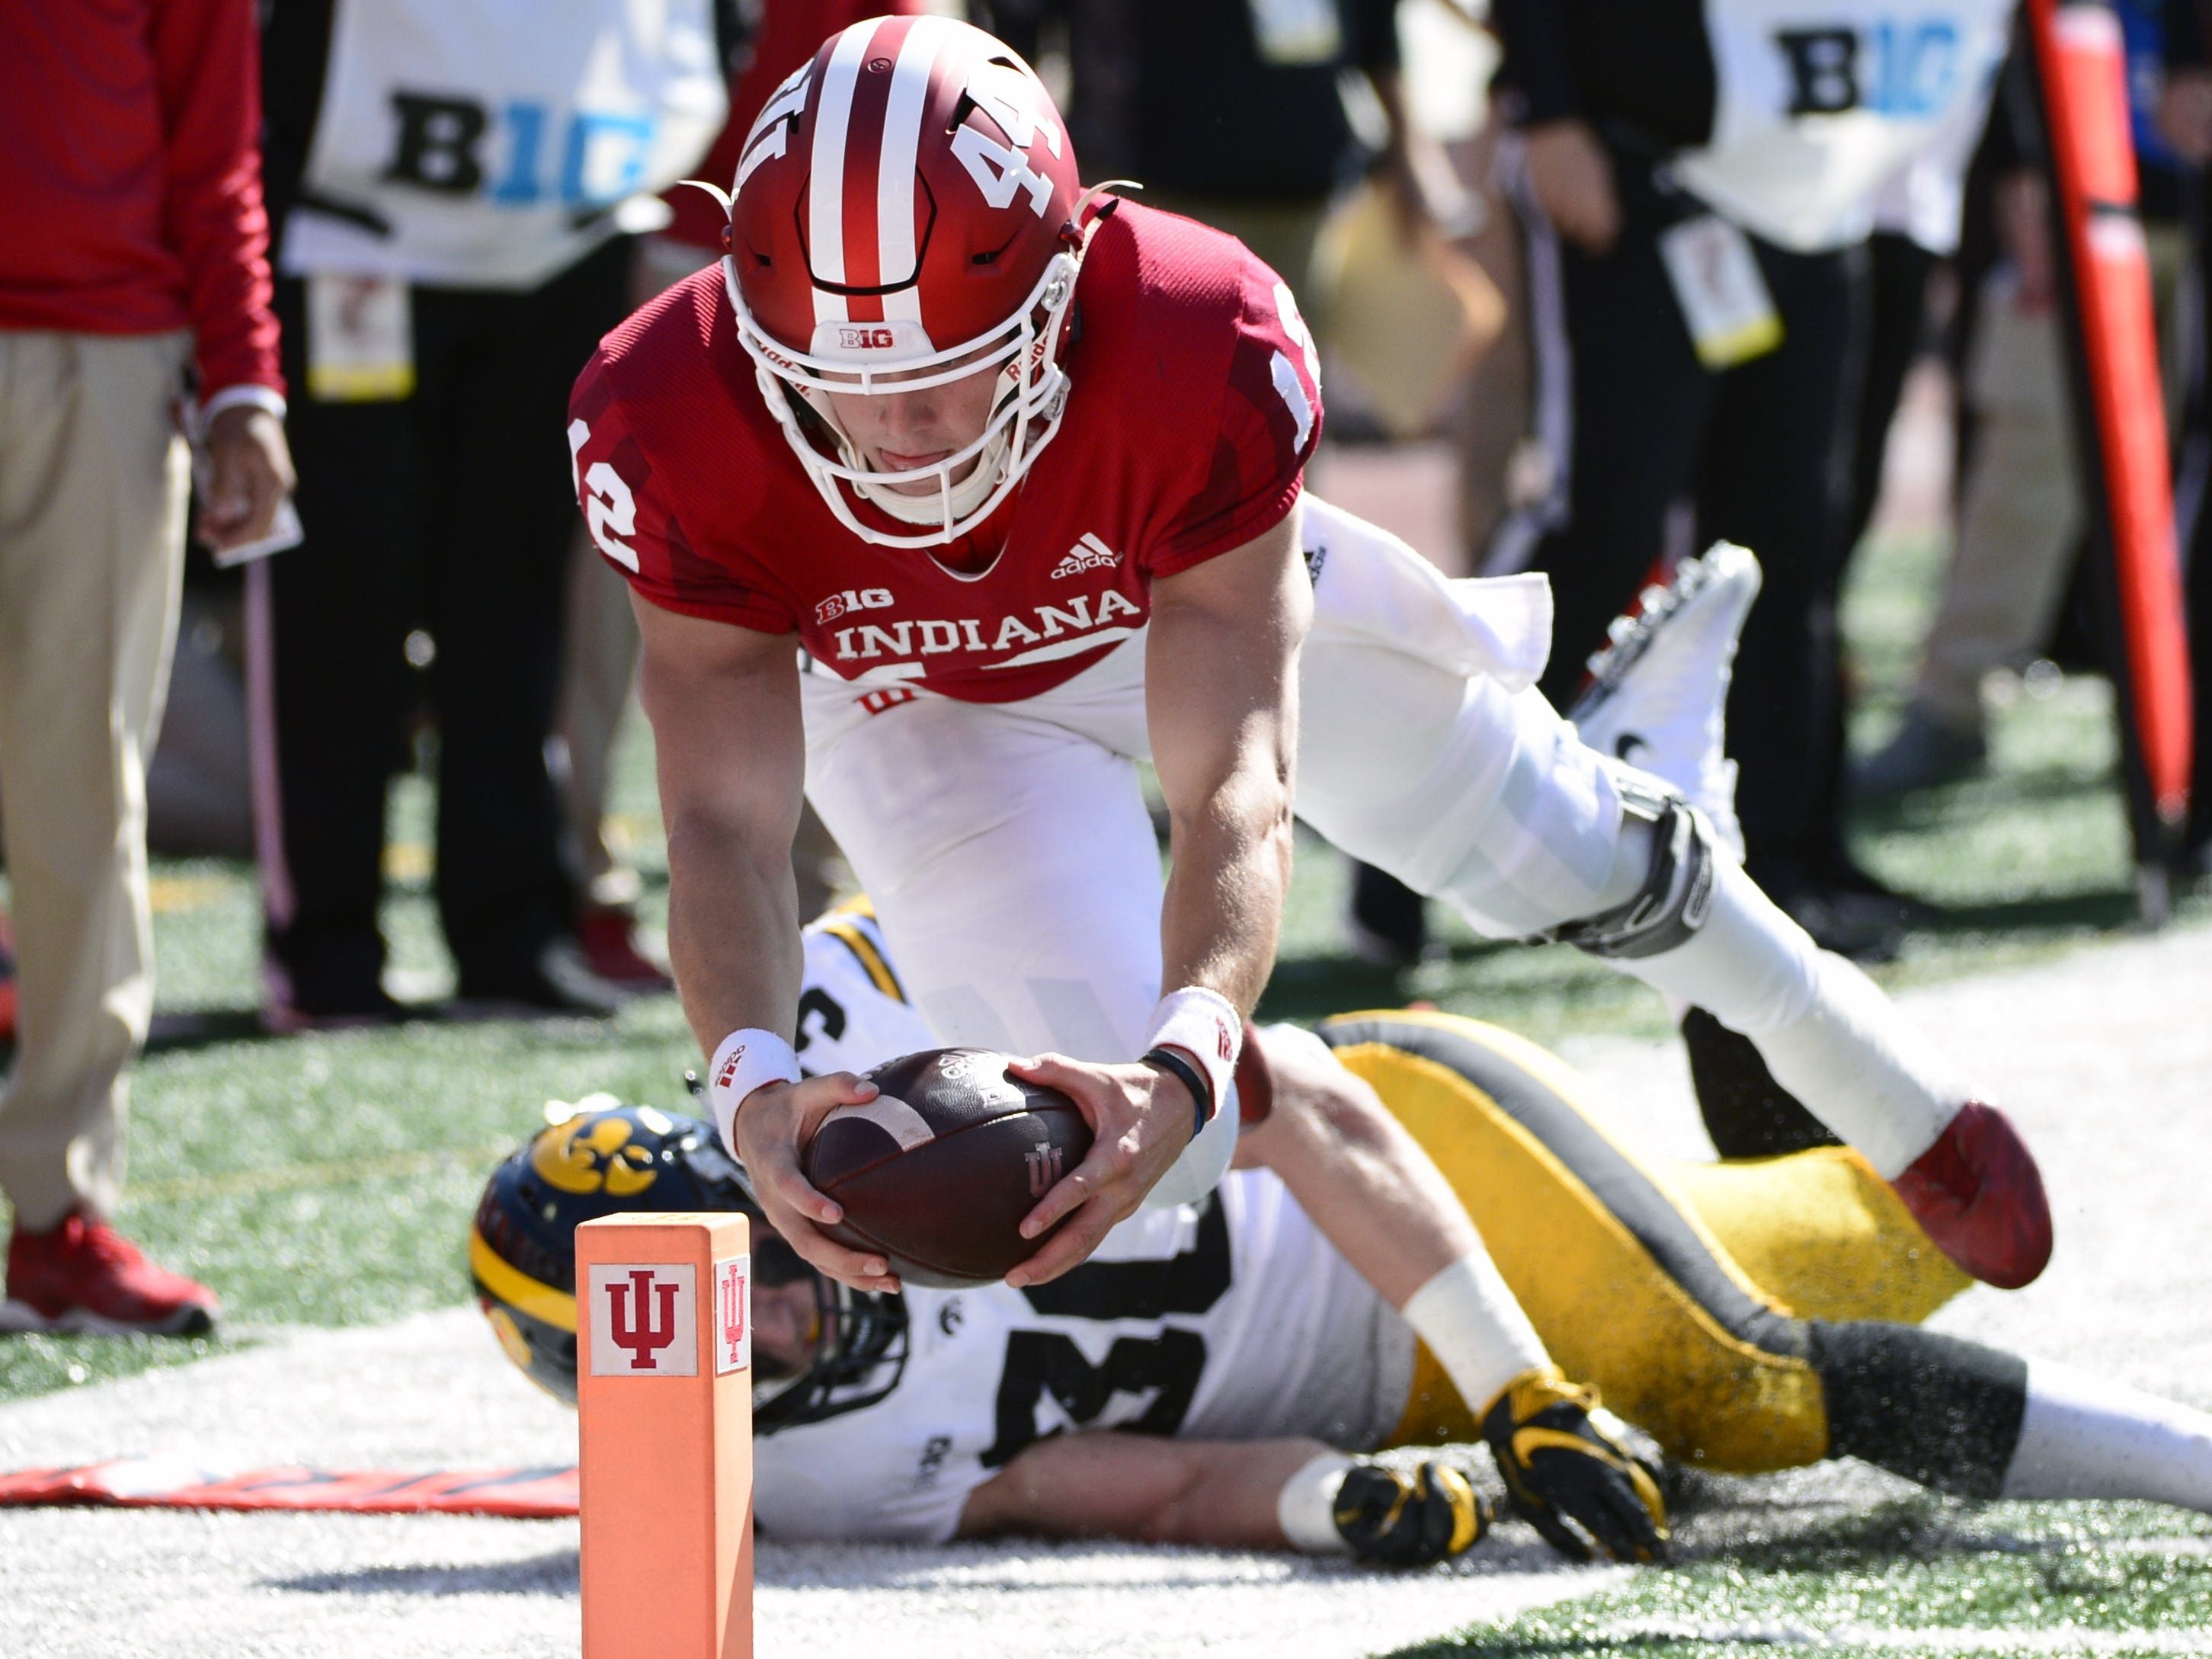 Indiana Hoosiers quarterback Peyton Ramsey (12) dives for the endzone against Iowa at Memorial Stadium in Bloomington, Ind., on Saturday, Oct. 13, 2018.